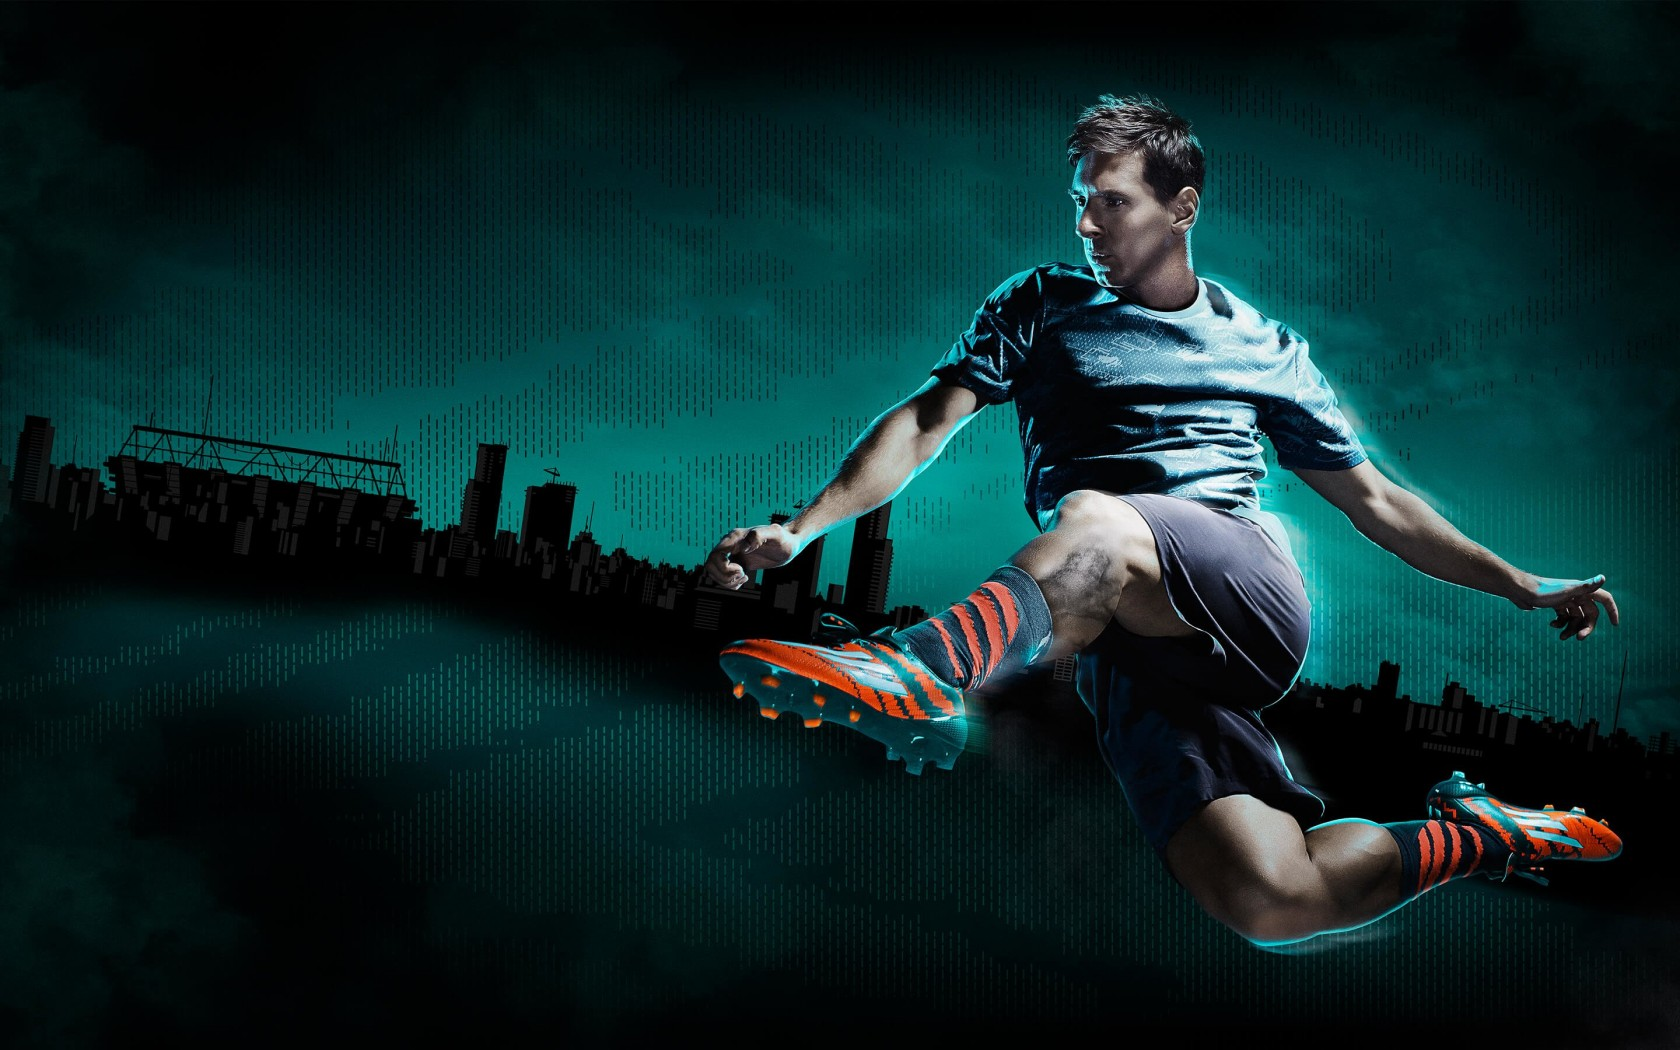 Lionel Messi Adidas Commercial Wallpaper for Desktop 1680x1050